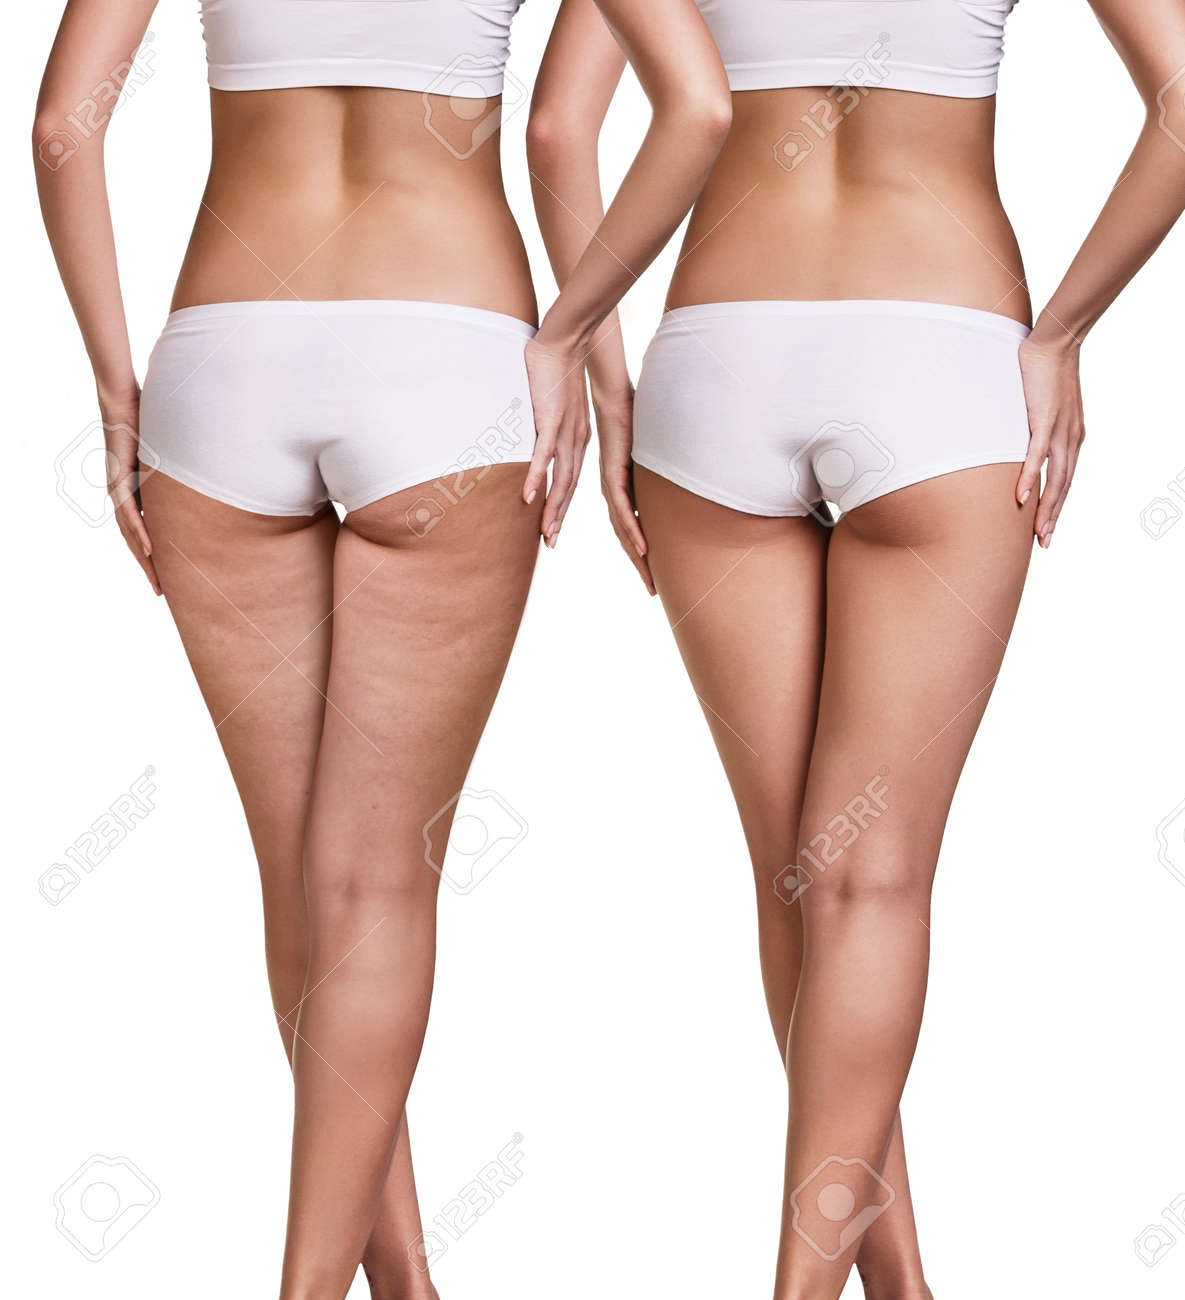 Female before and after cellulite skin isolated on white - 68291325